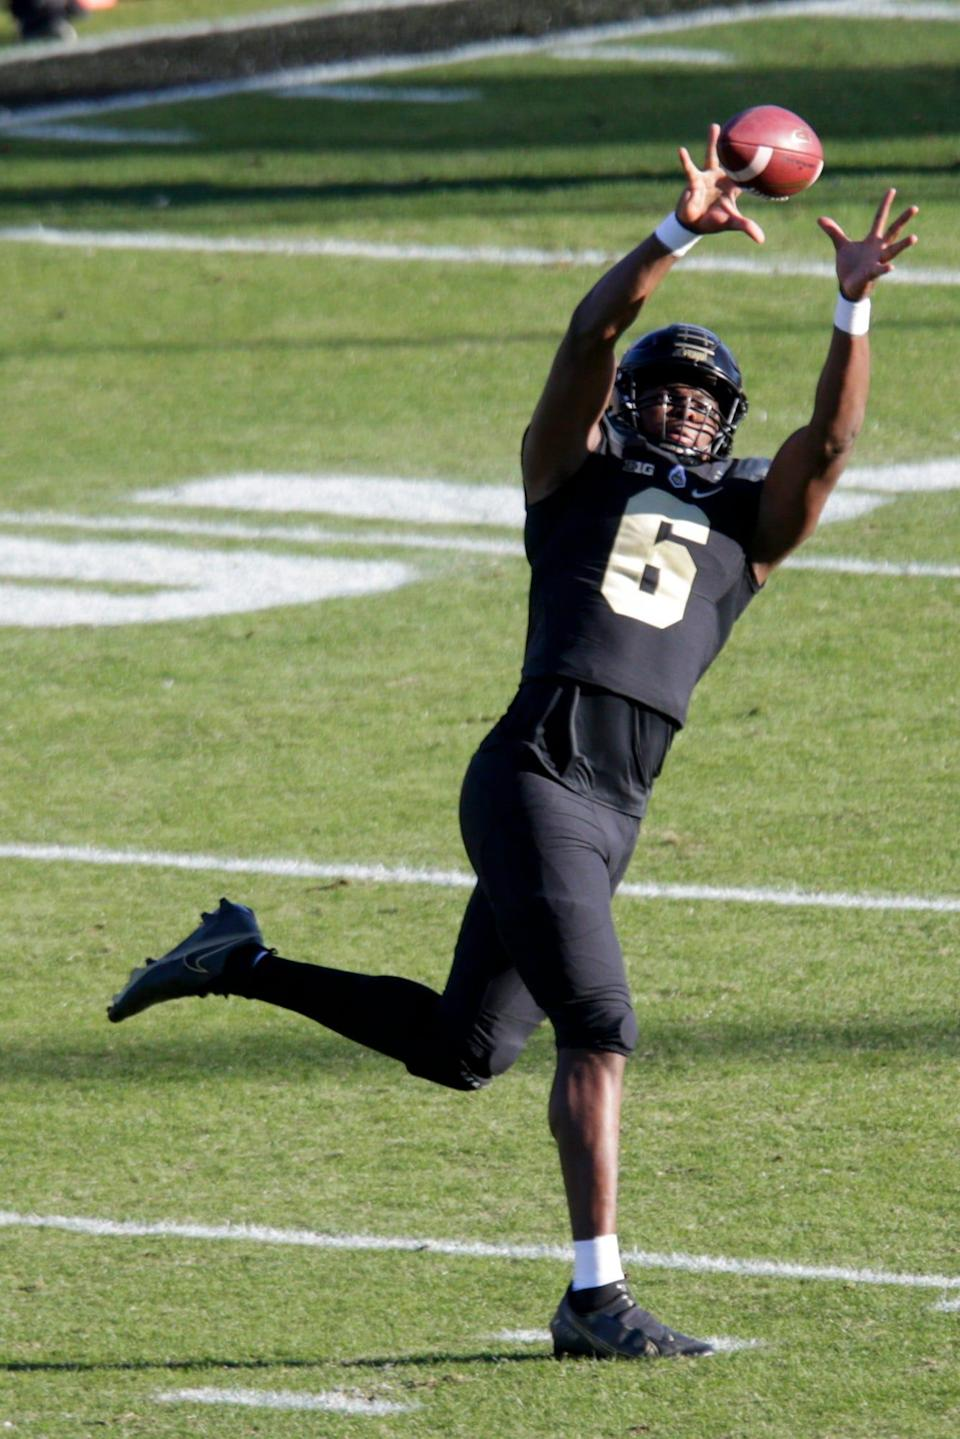 Purdue wide receiver Maliq Carr (6) warms up prior to the start of an NCAA college football game, Saturday, Nov. 28, 2020 at Ross-Ade Stadium in West Lafayette.